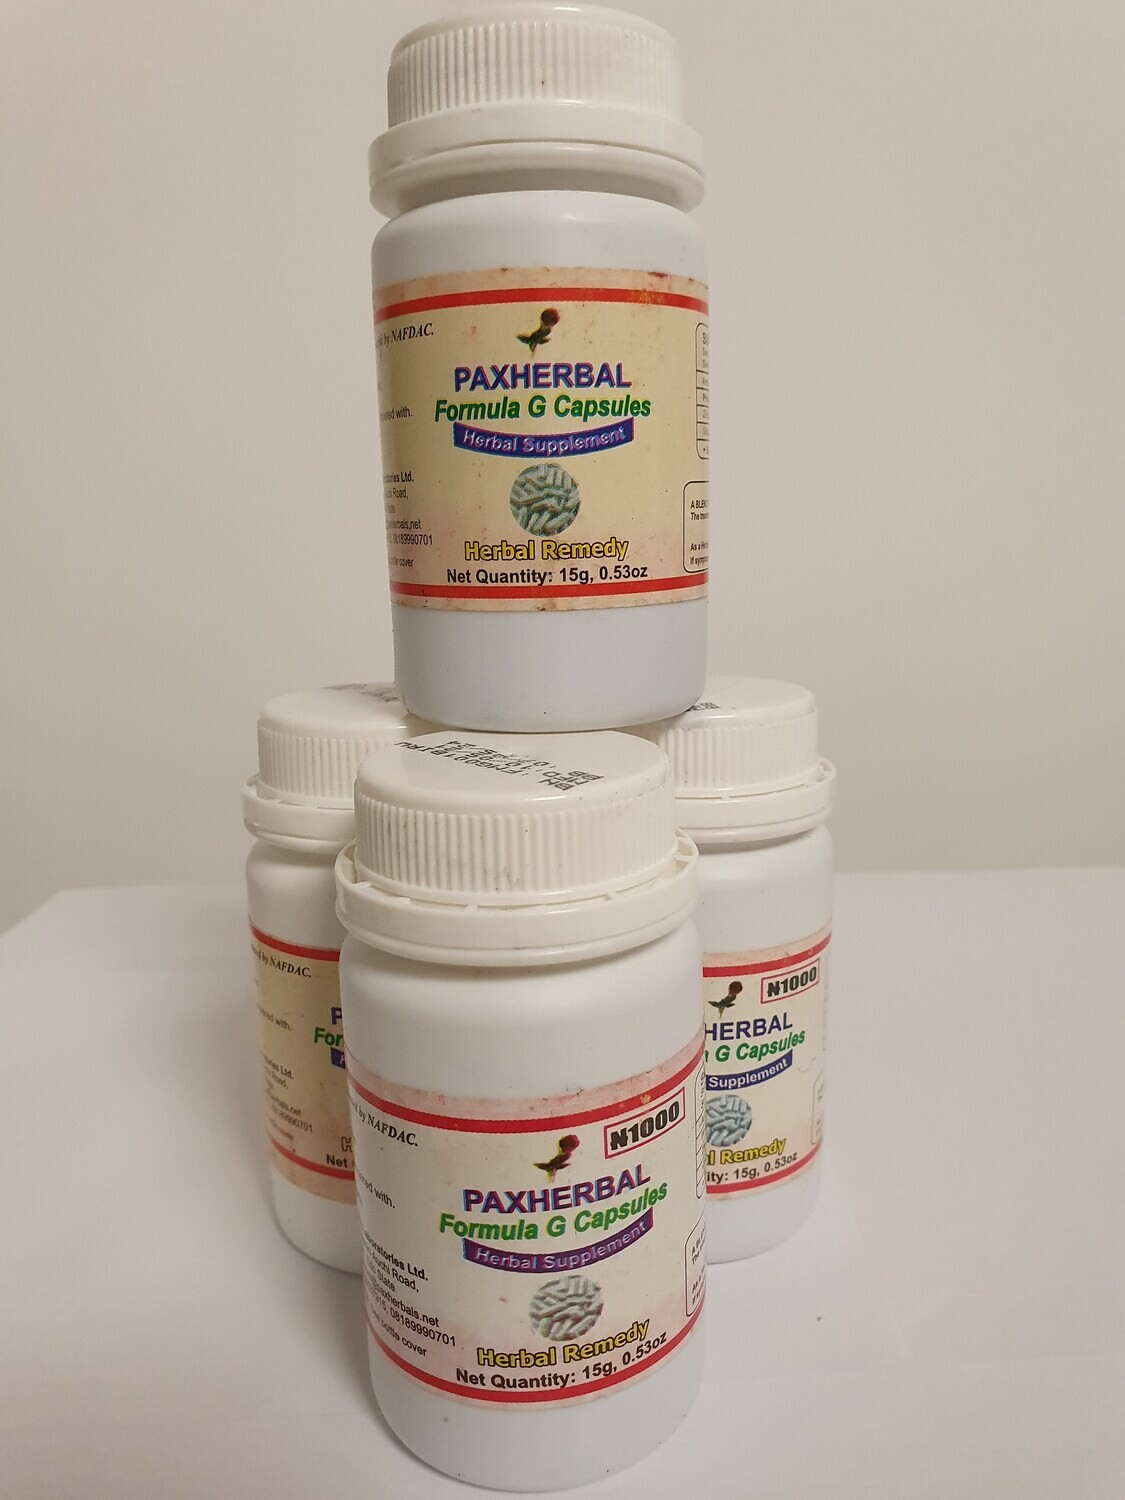 Paxherbal Formula G for low libido, fatigue and fevers